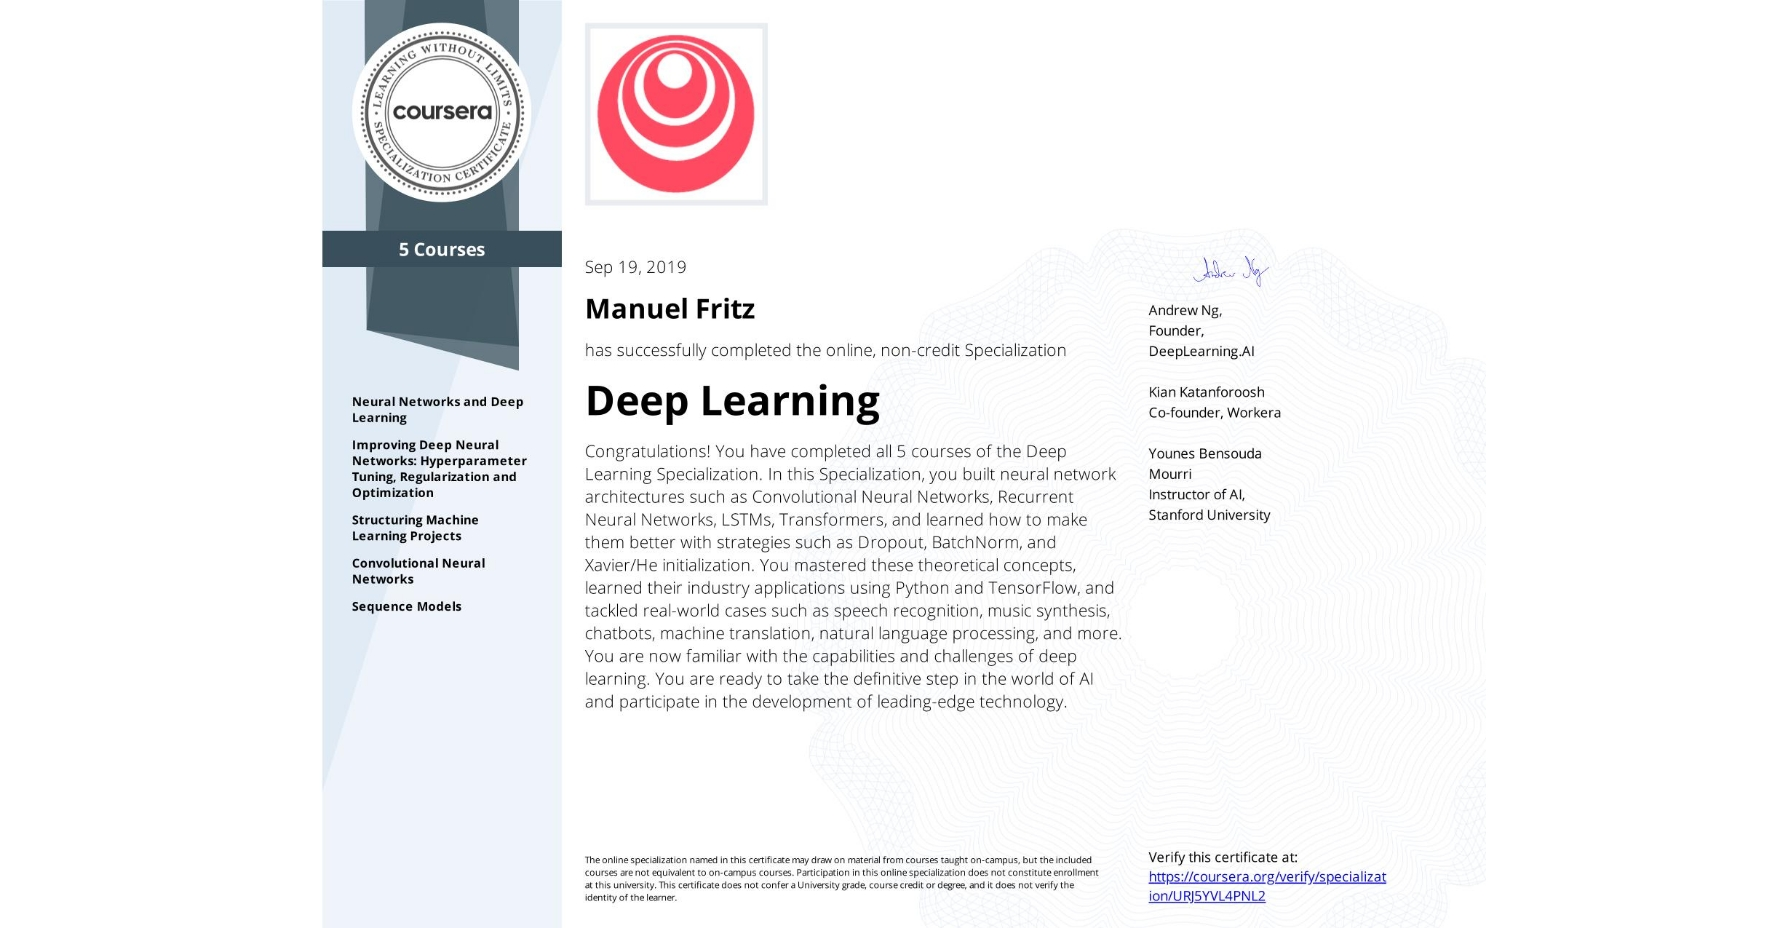 View certificate for Manuel Fritz, Deep Learning, offered through Coursera. Congratulations! You have completed all 5 courses of the Deep Learning Specialization.  In this Specialization, you built neural network architectures such as Convolutional Neural Networks, Recurrent Neural Networks, LSTMs, Transformers, and learned how to make them better with strategies such as Dropout, BatchNorm, and Xavier/He initialization. You mastered these theoretical concepts, learned their industry applications using Python and TensorFlow, and tackled real-world cases such as speech recognition, music synthesis, chatbots, machine translation, natural language processing, and more.  You are now familiar with the capabilities and challenges of deep learning. You are ready to take the definitive step in the world of AI and participate in the development of leading-edge technology.